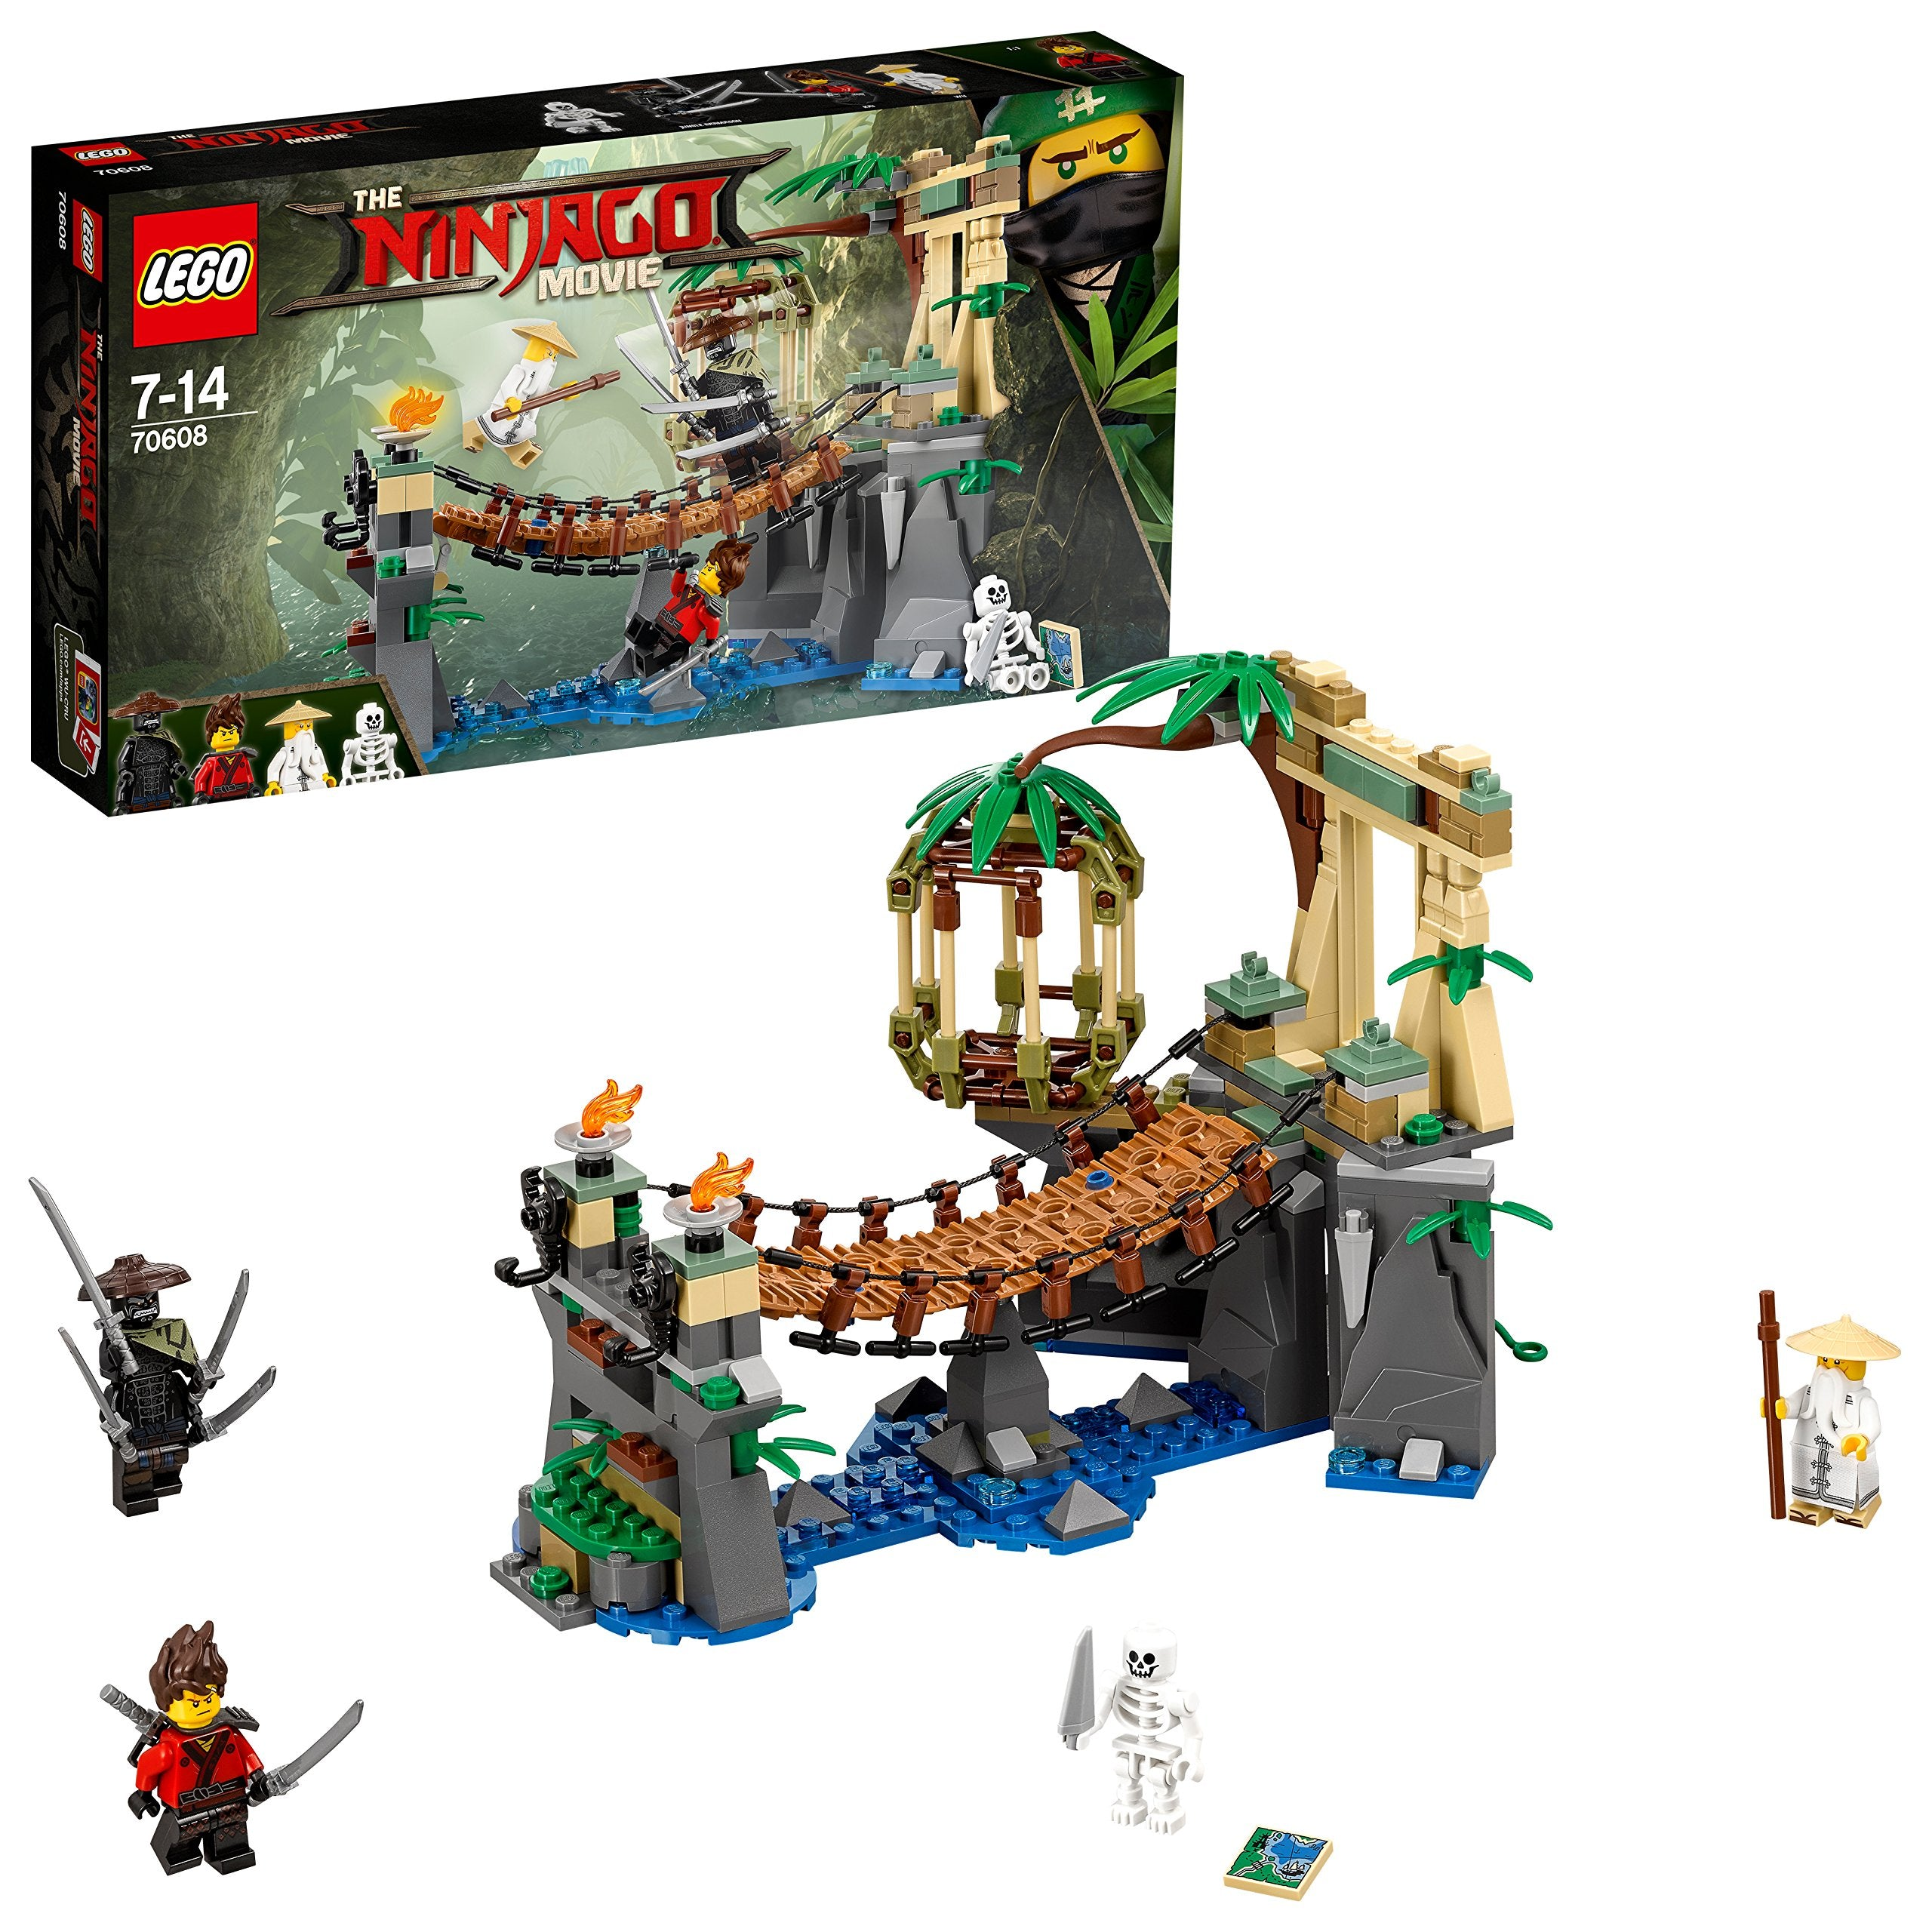 LEGO 70608 Ninjago Movie - Master Falls Building Kit (312 Piece)